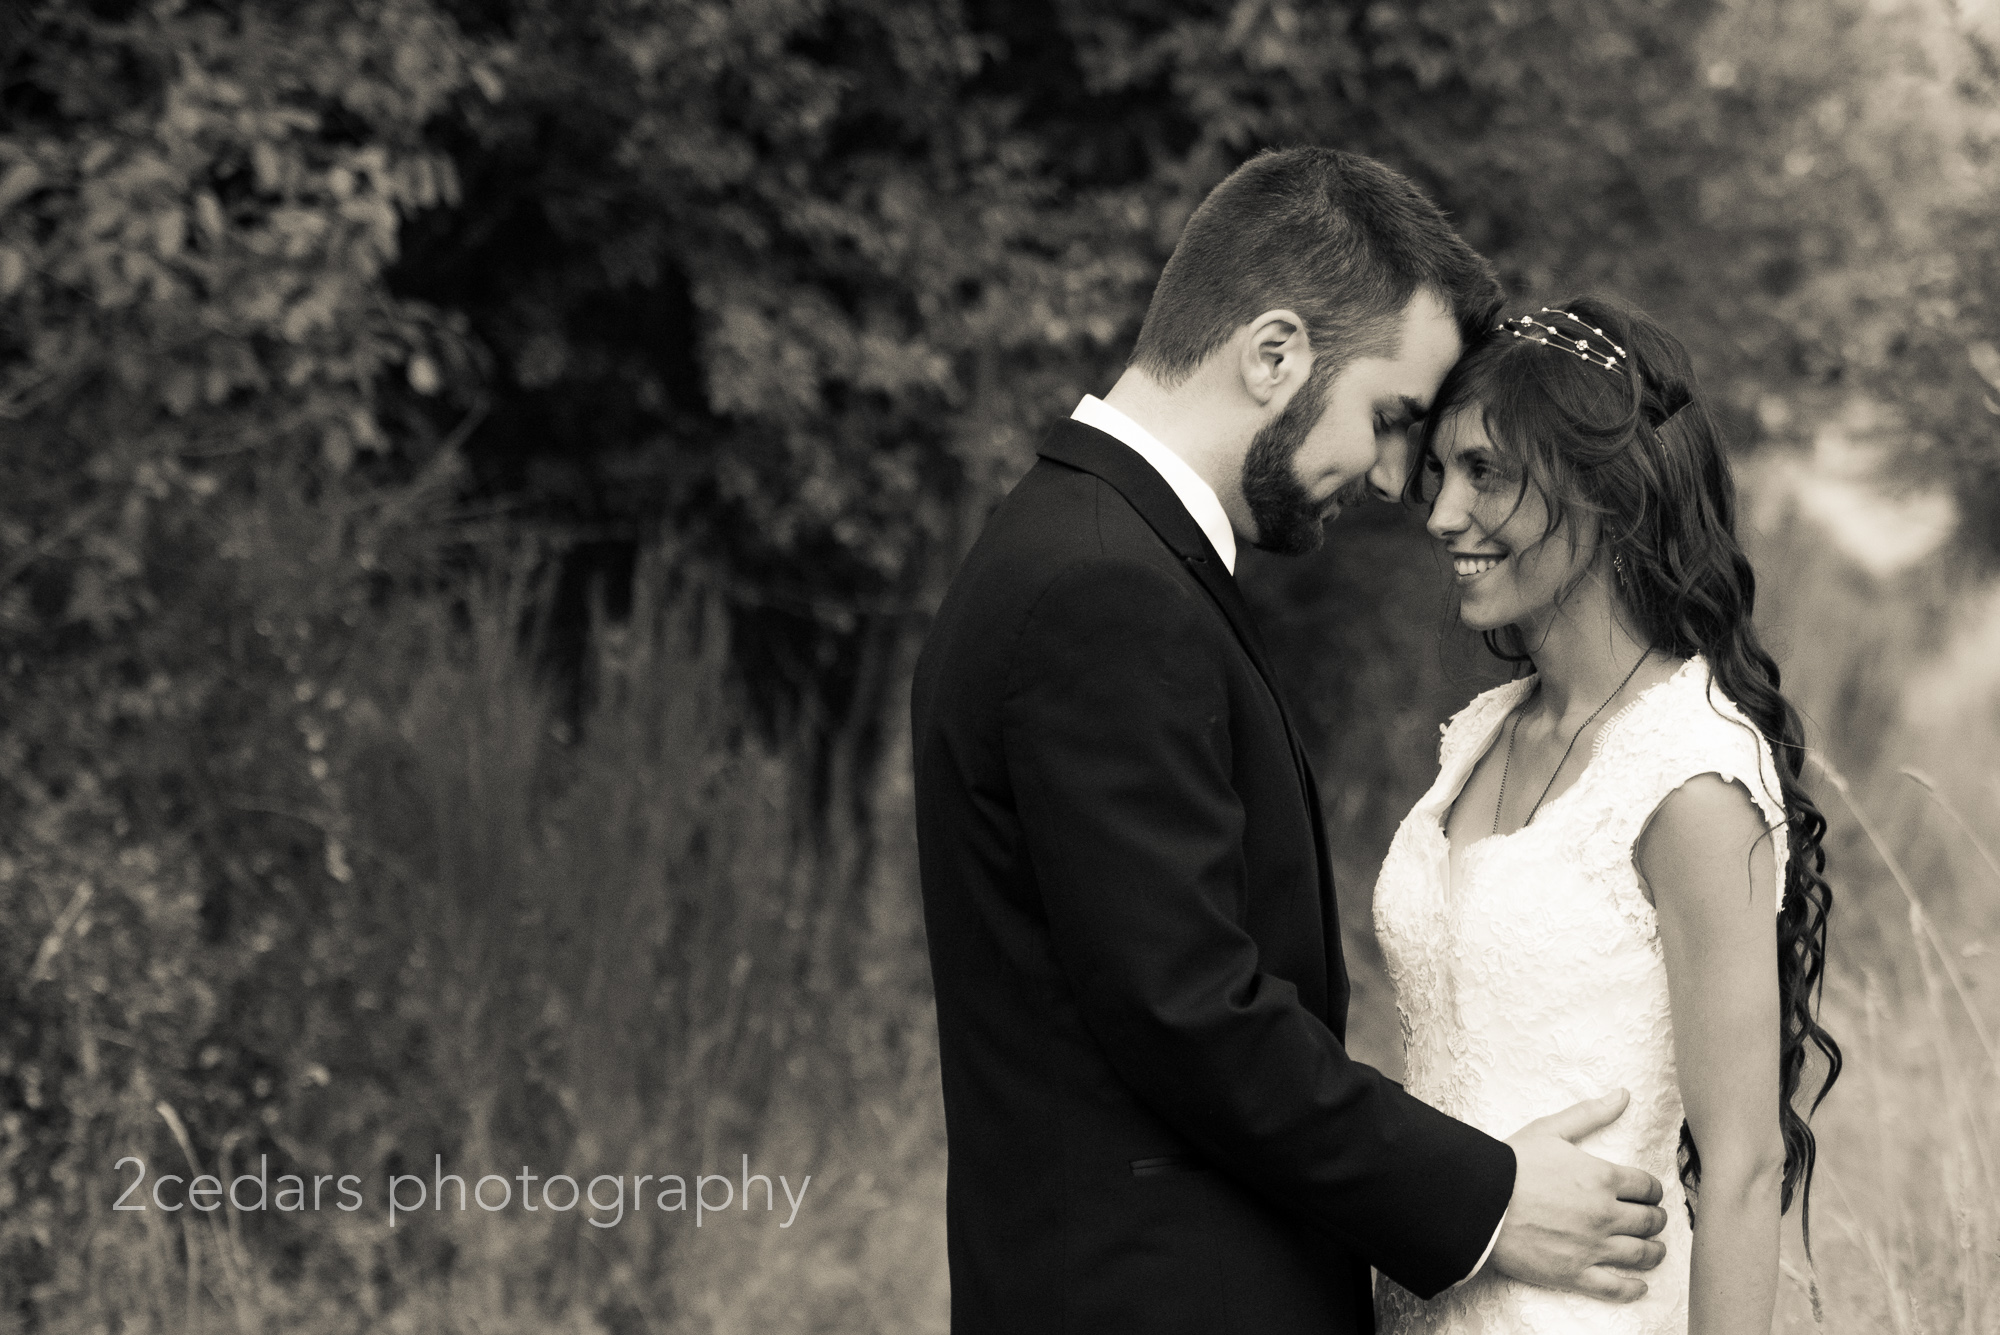 Black and white bride and groom documentary style portrait